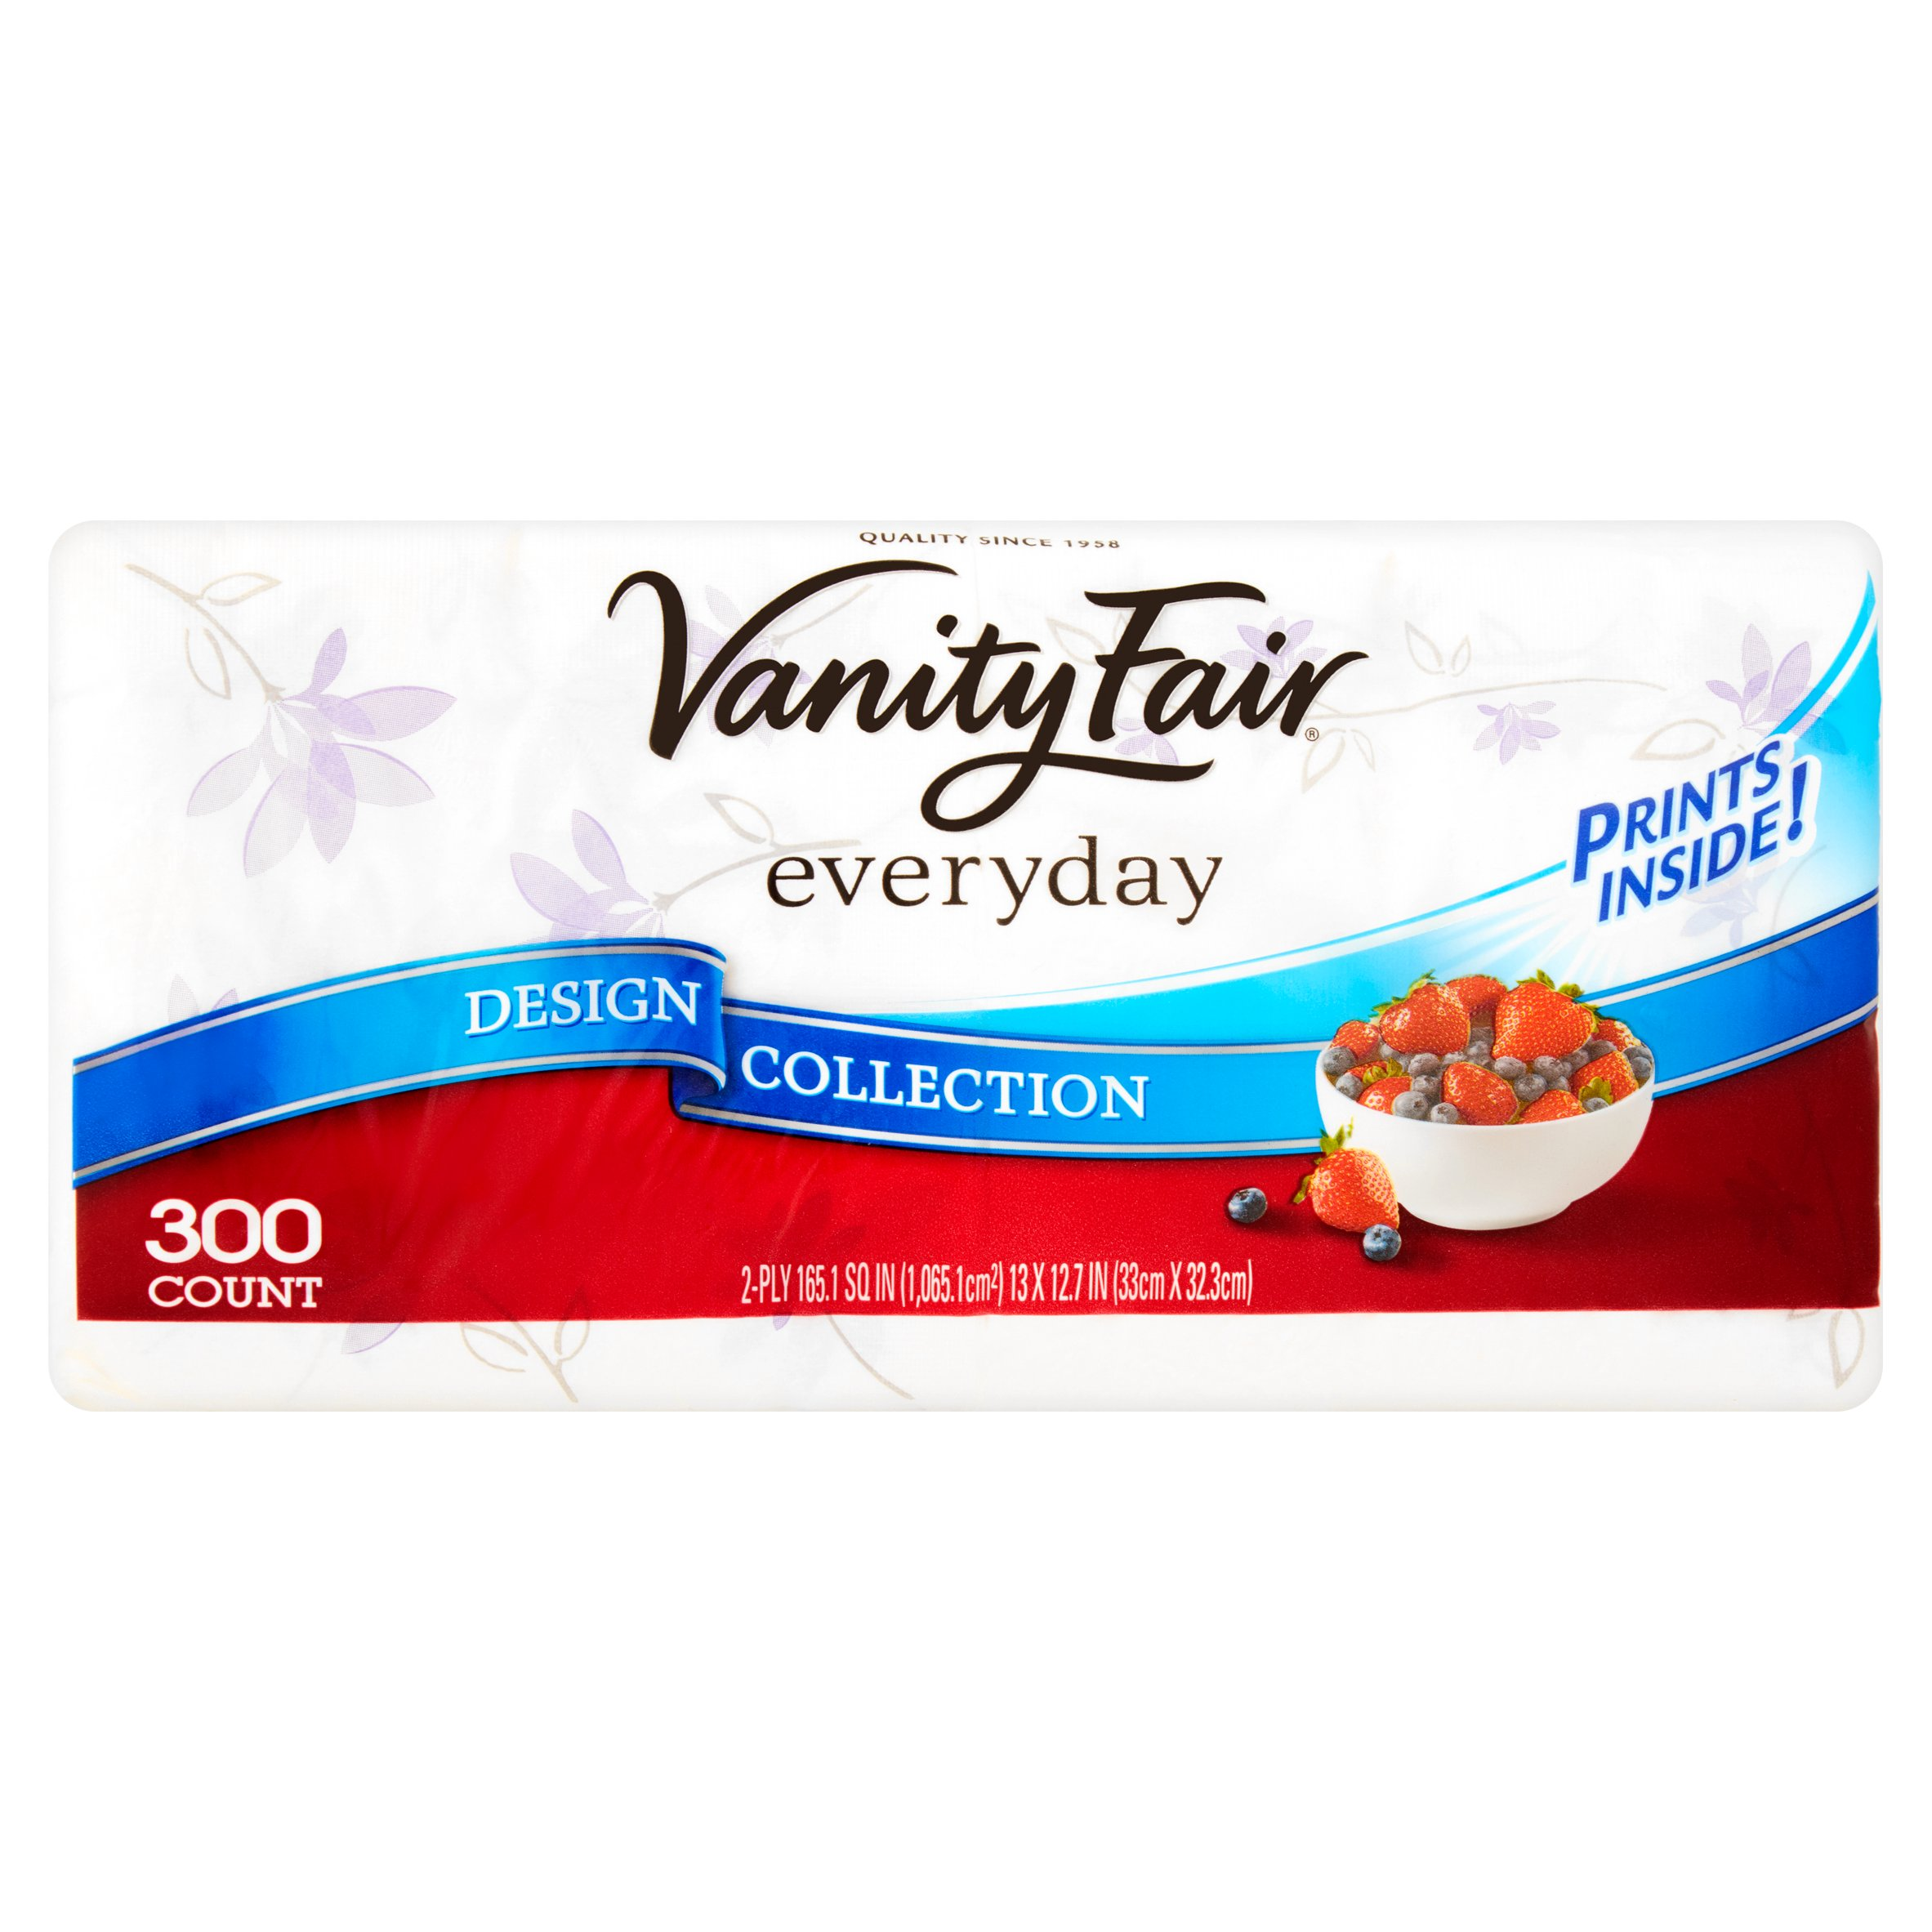 Vanity Fair Everyday Design Collection Paper Napkins, 300 count